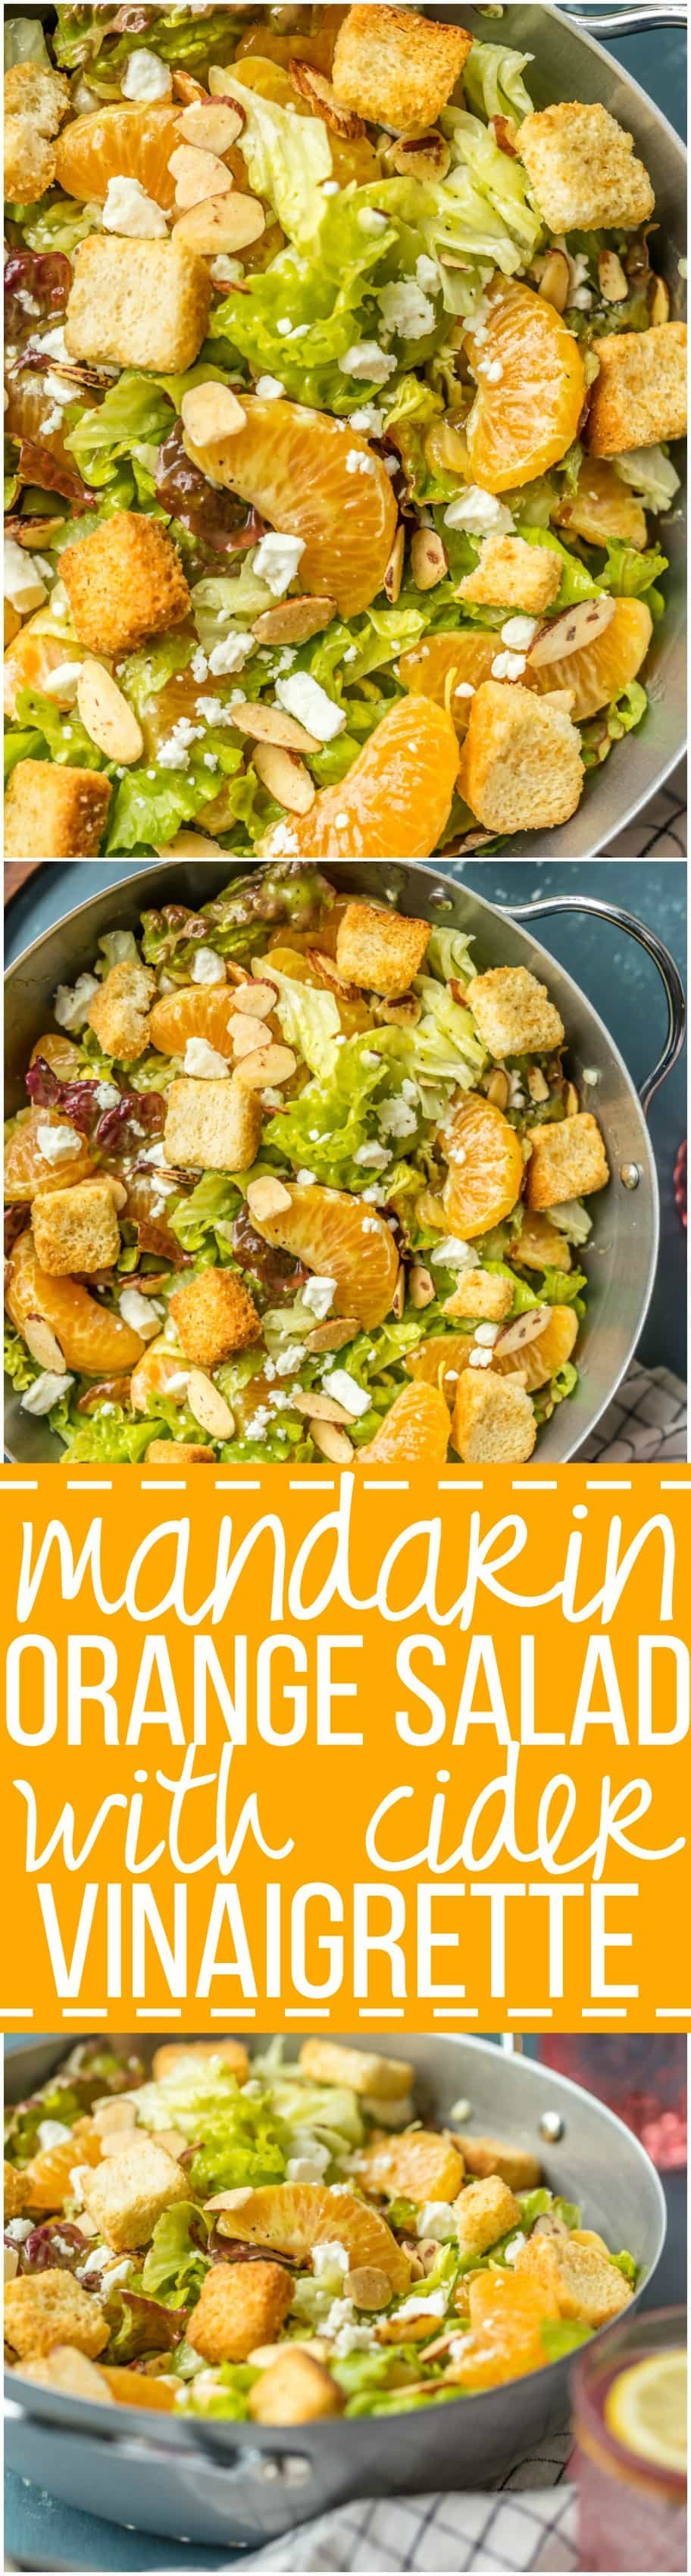 This MANDARIN ORANGE SALAD with ALMONDS AND CIDER VINAIGRETTE has been a favorite in our family forever! SO flavorful and easy. Such a great salad to throw together anytime!